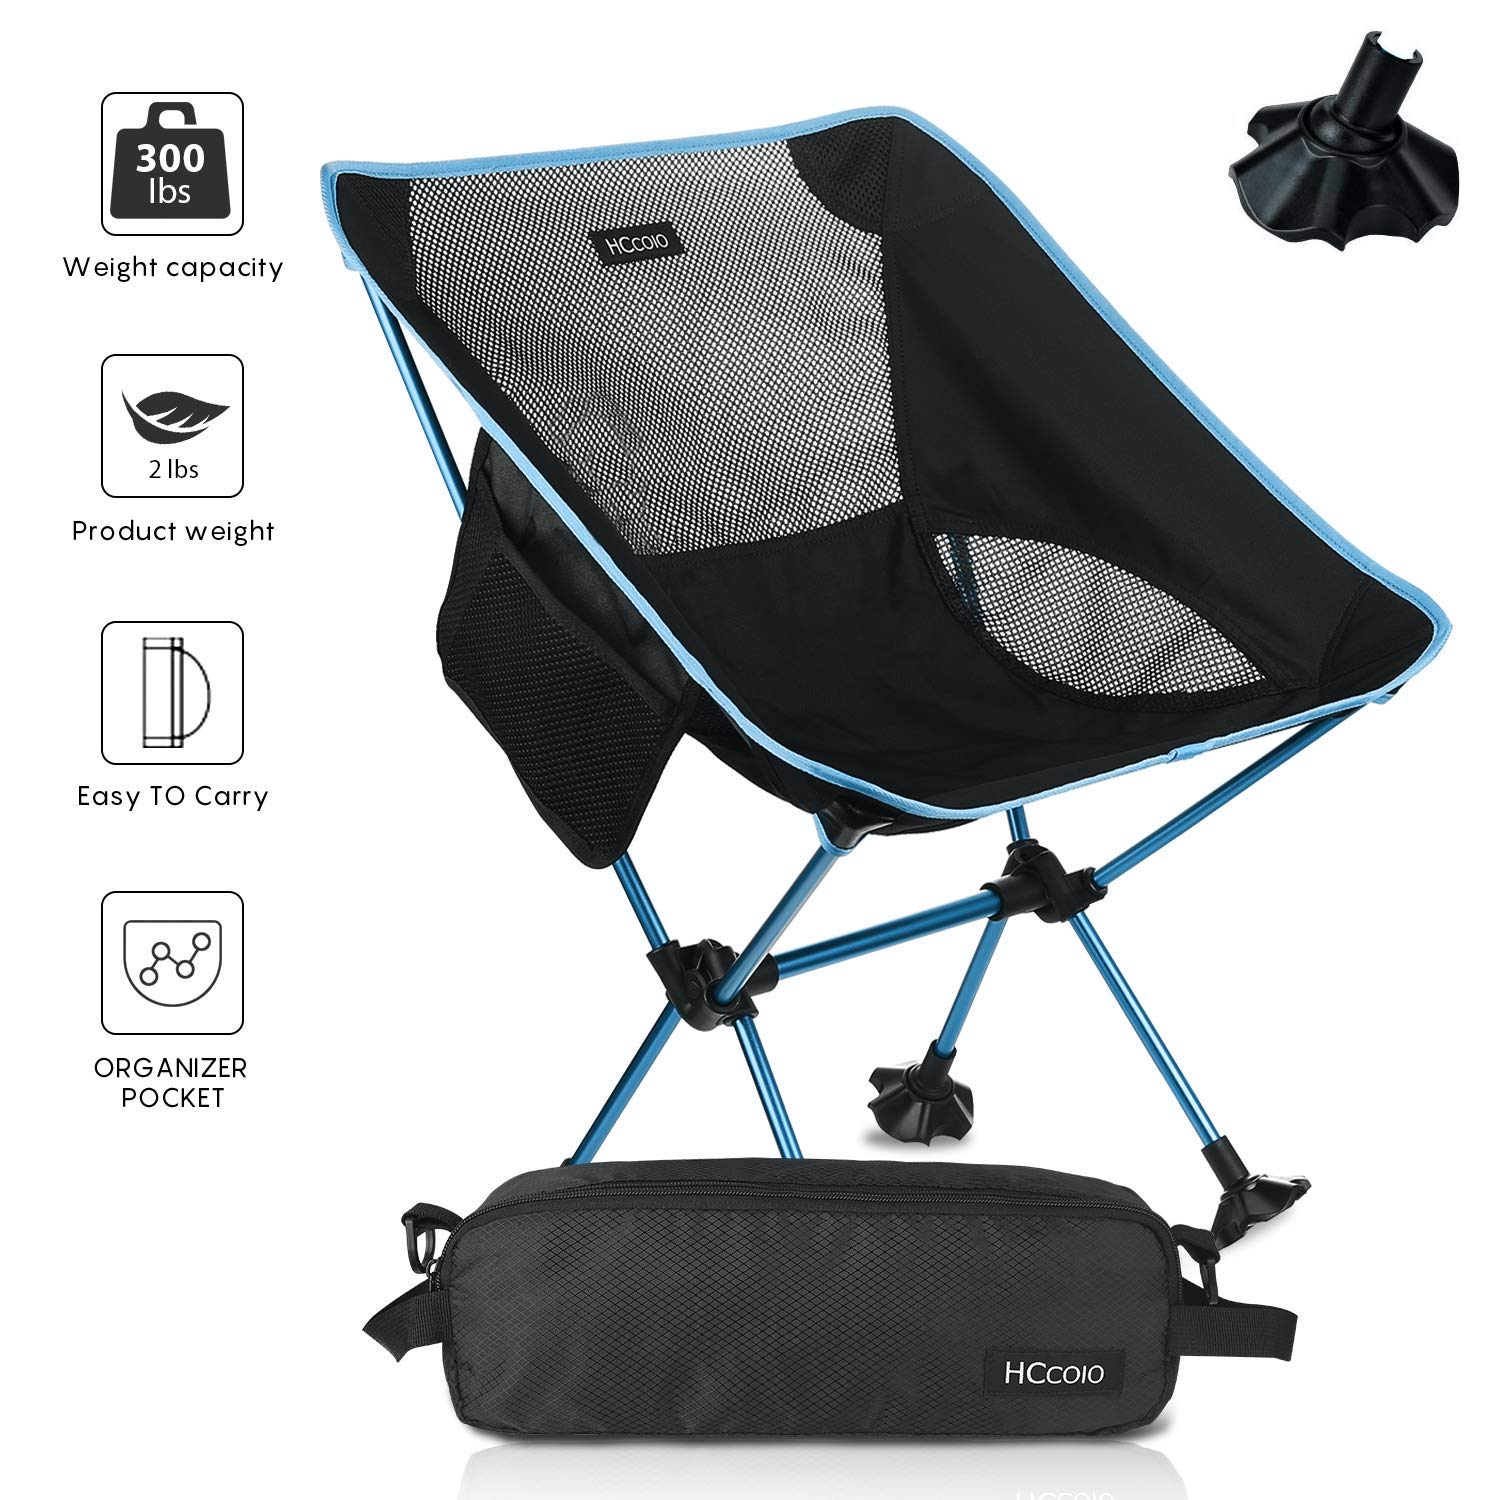 Amazon.com: HCcolo 【Upgrade Non-Slip Feet Camping Chair ...